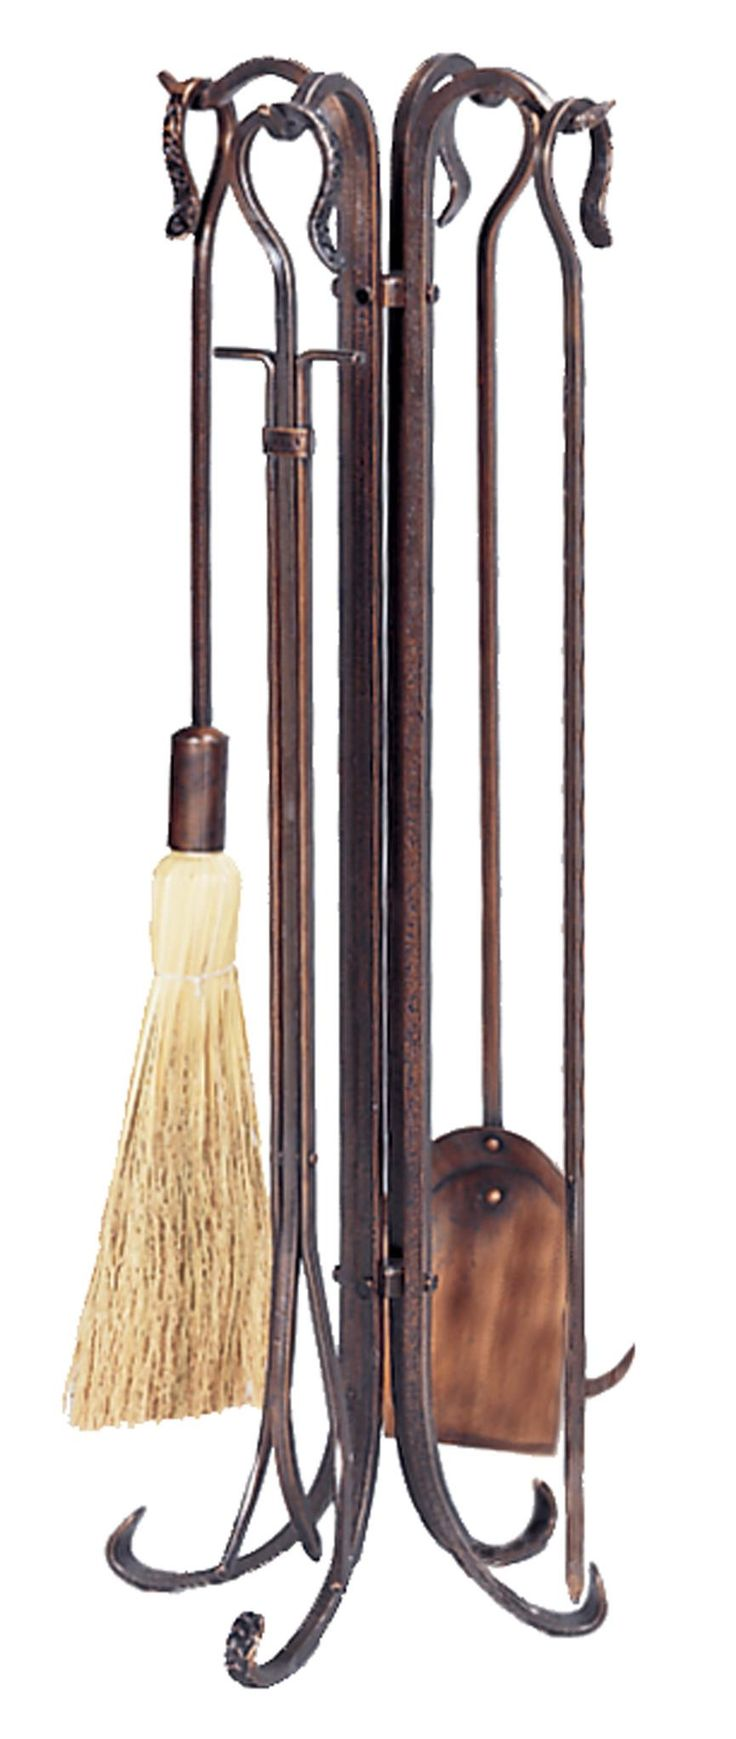 5 Pc Antique Copper Fireset - This classic UniFlame(R) fireplace tool set, by Blue Rhino(R), has all the tools you need to tend to a roaring fire. The set includes a poker, brush, log lifter and shovel. Its popular antique copper finish and timeless styling will accent a variety of decor. Tools hang from integrated hook handles that are both attractive and functional. Antique copper finish Shepard hook handles hang from stand Transitional base will accent a variety of decor Includes shovel…